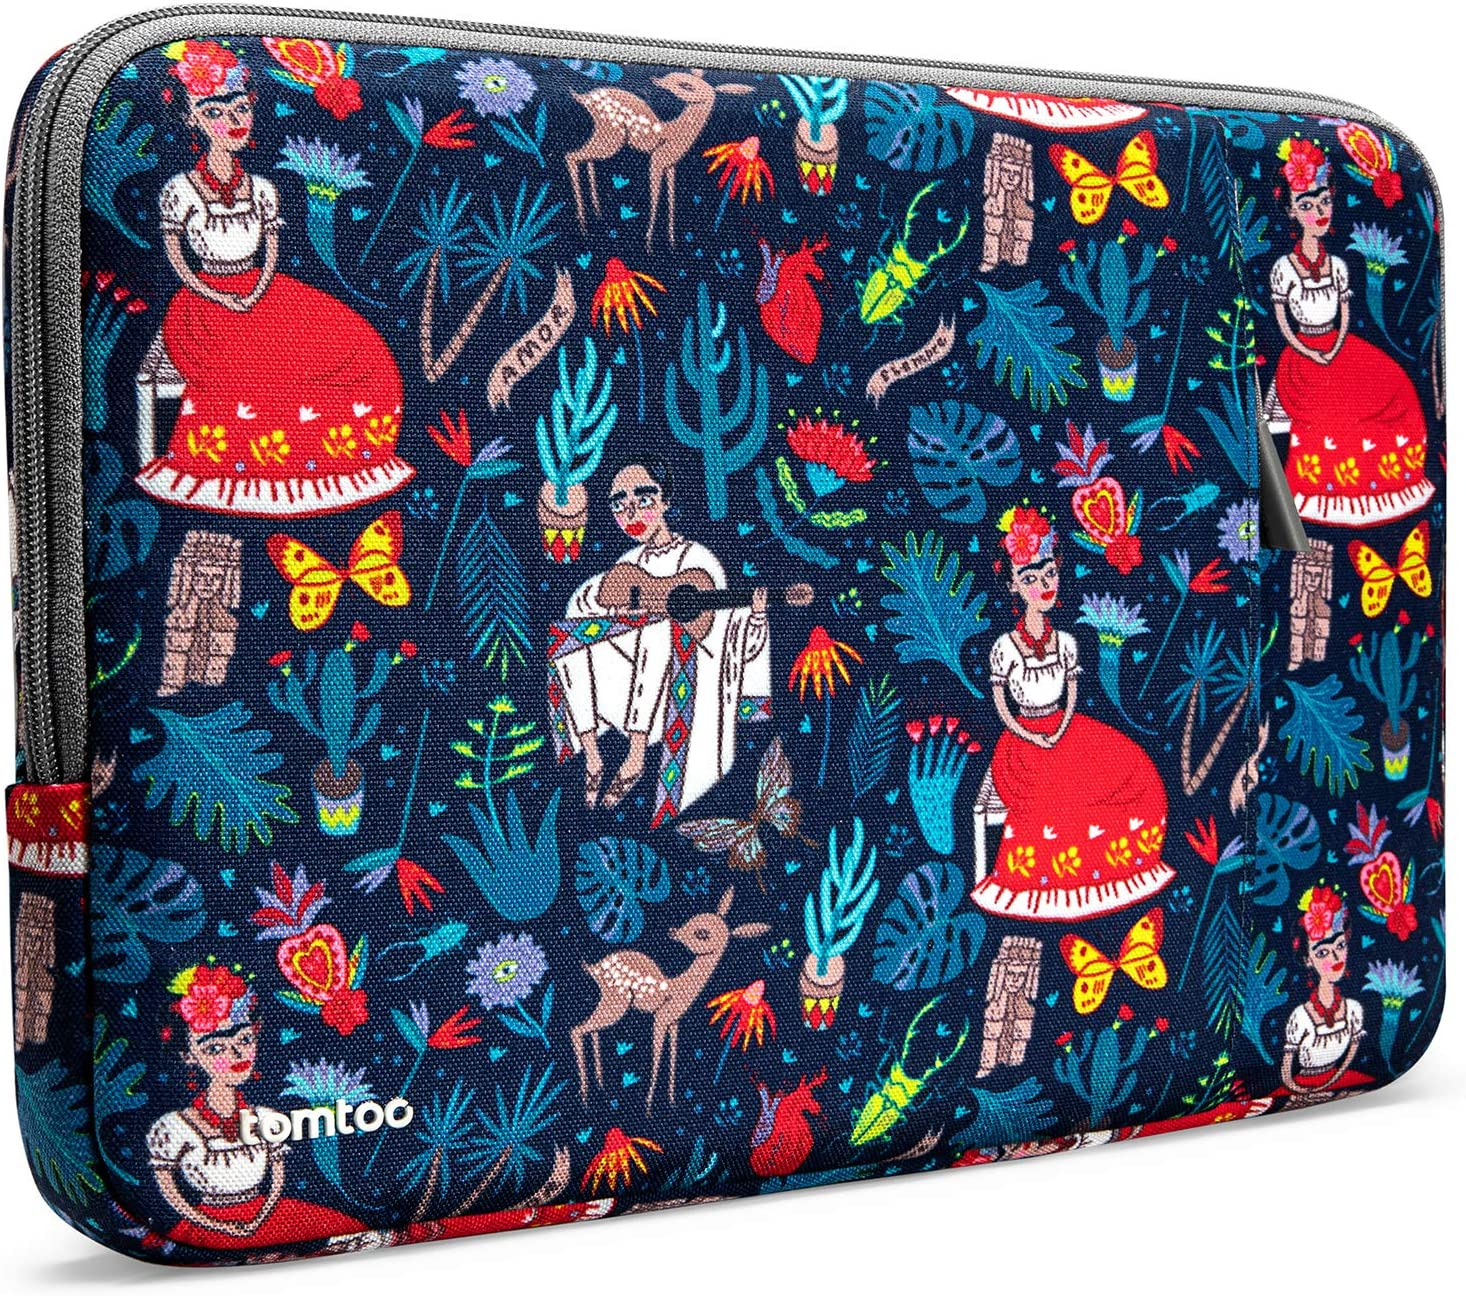 tomtoc 360 Protective Laptop Sleeve for 13-inch MacBook Air M1/A2337 A2179 2018-2021, MacBook Pro M1/A2338 A2251 A2289 2016-2021, 12.9 iPad Pro 5th/4th/3rd Gen, Accessory Case with 4 CornerArmors